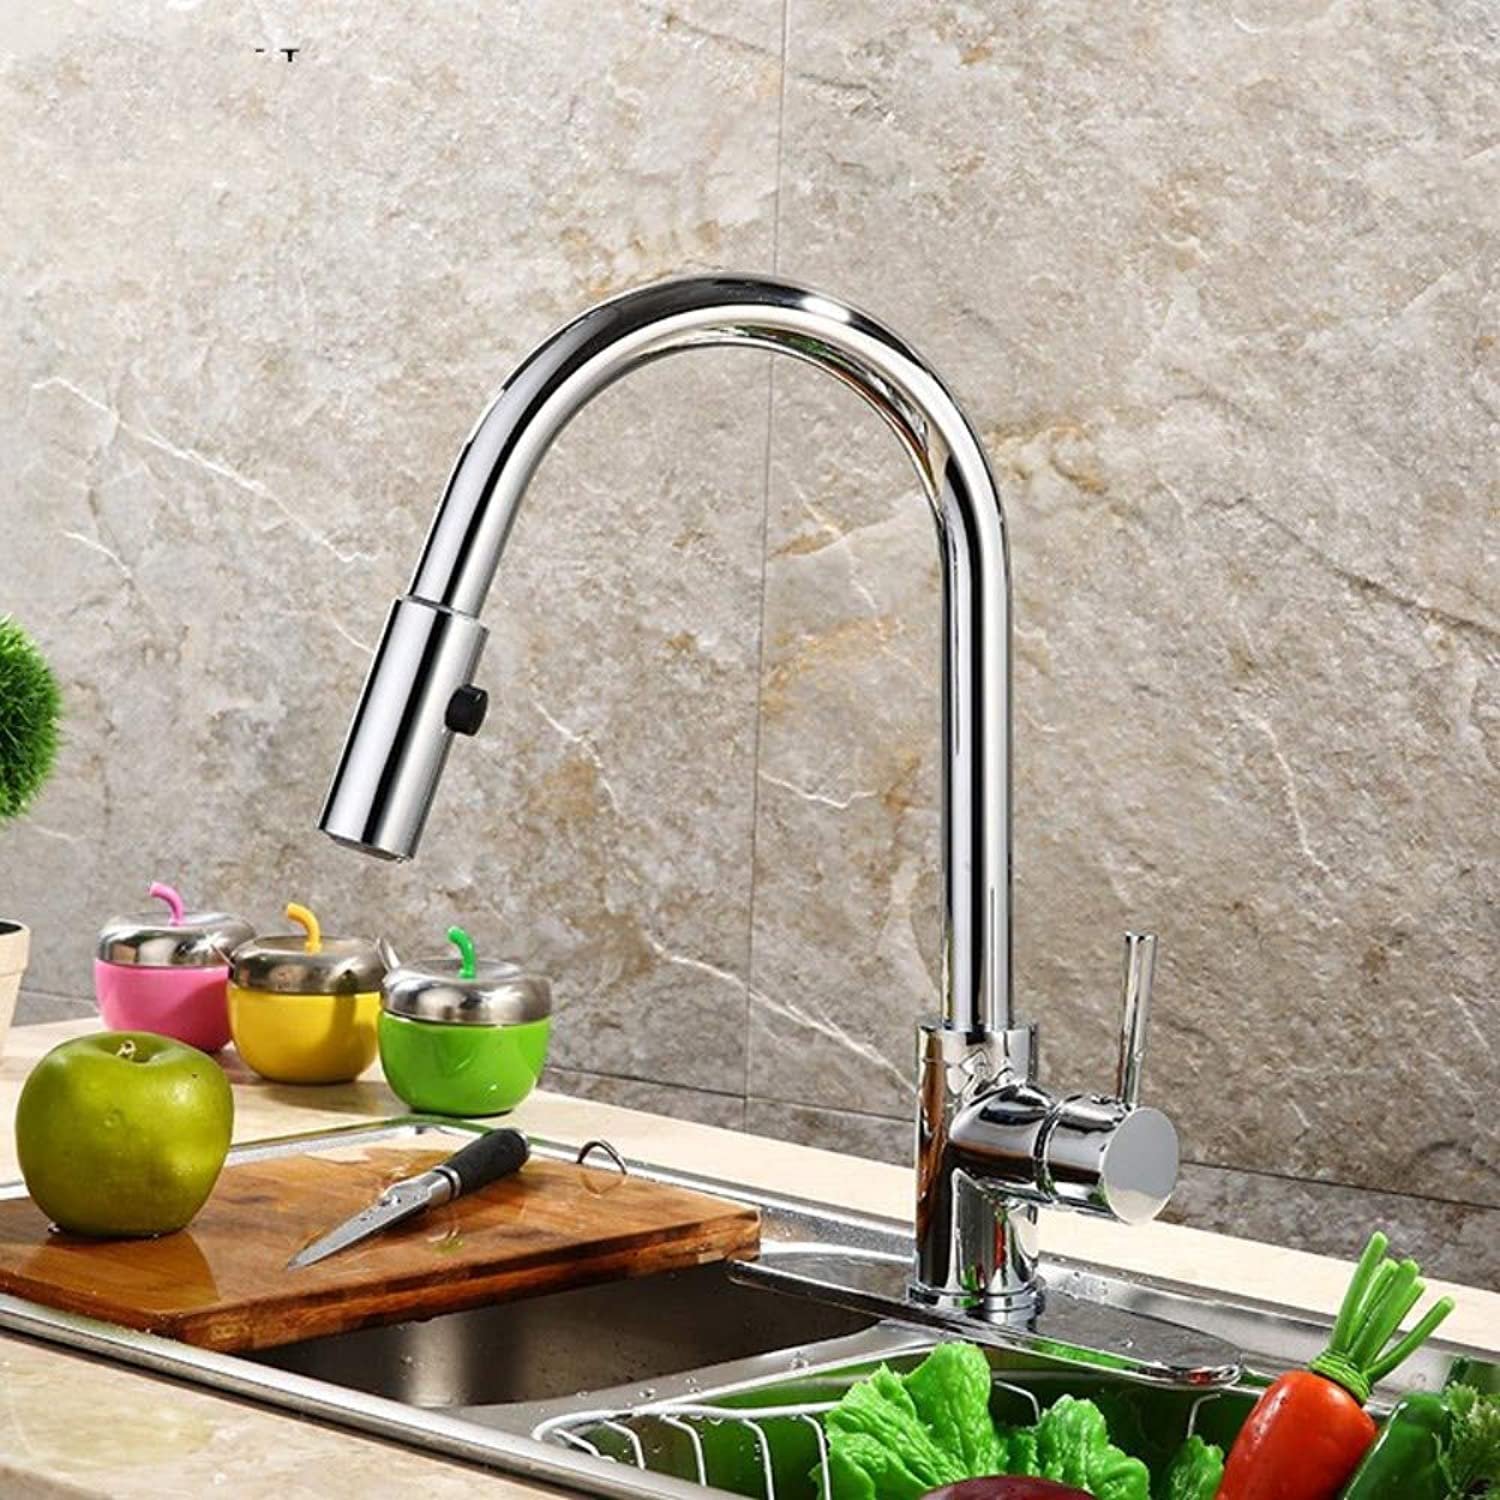 redOOY Taps Faucet Kitchen Hot And Cold Water Faucet Pull The Sink Faucet Into The Wall Mixer